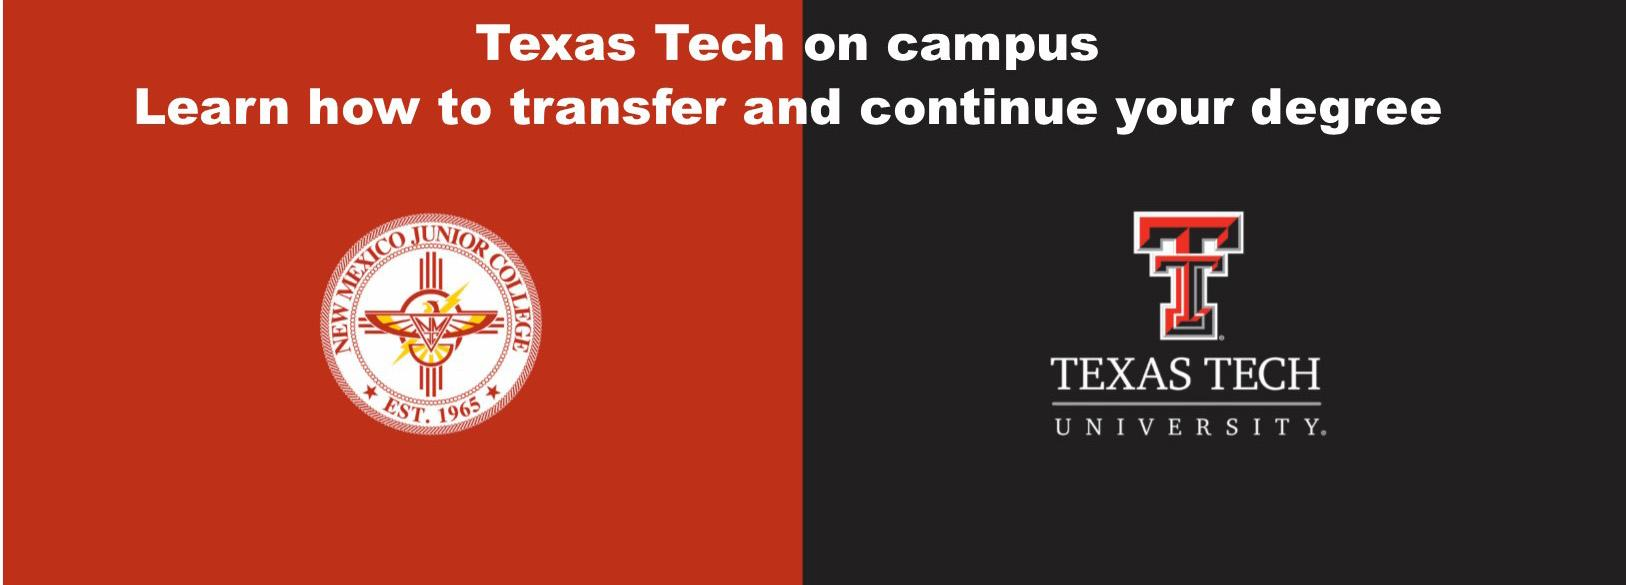 Texas Tech on Campus Wednesday Jan 16 -  10am-1pm